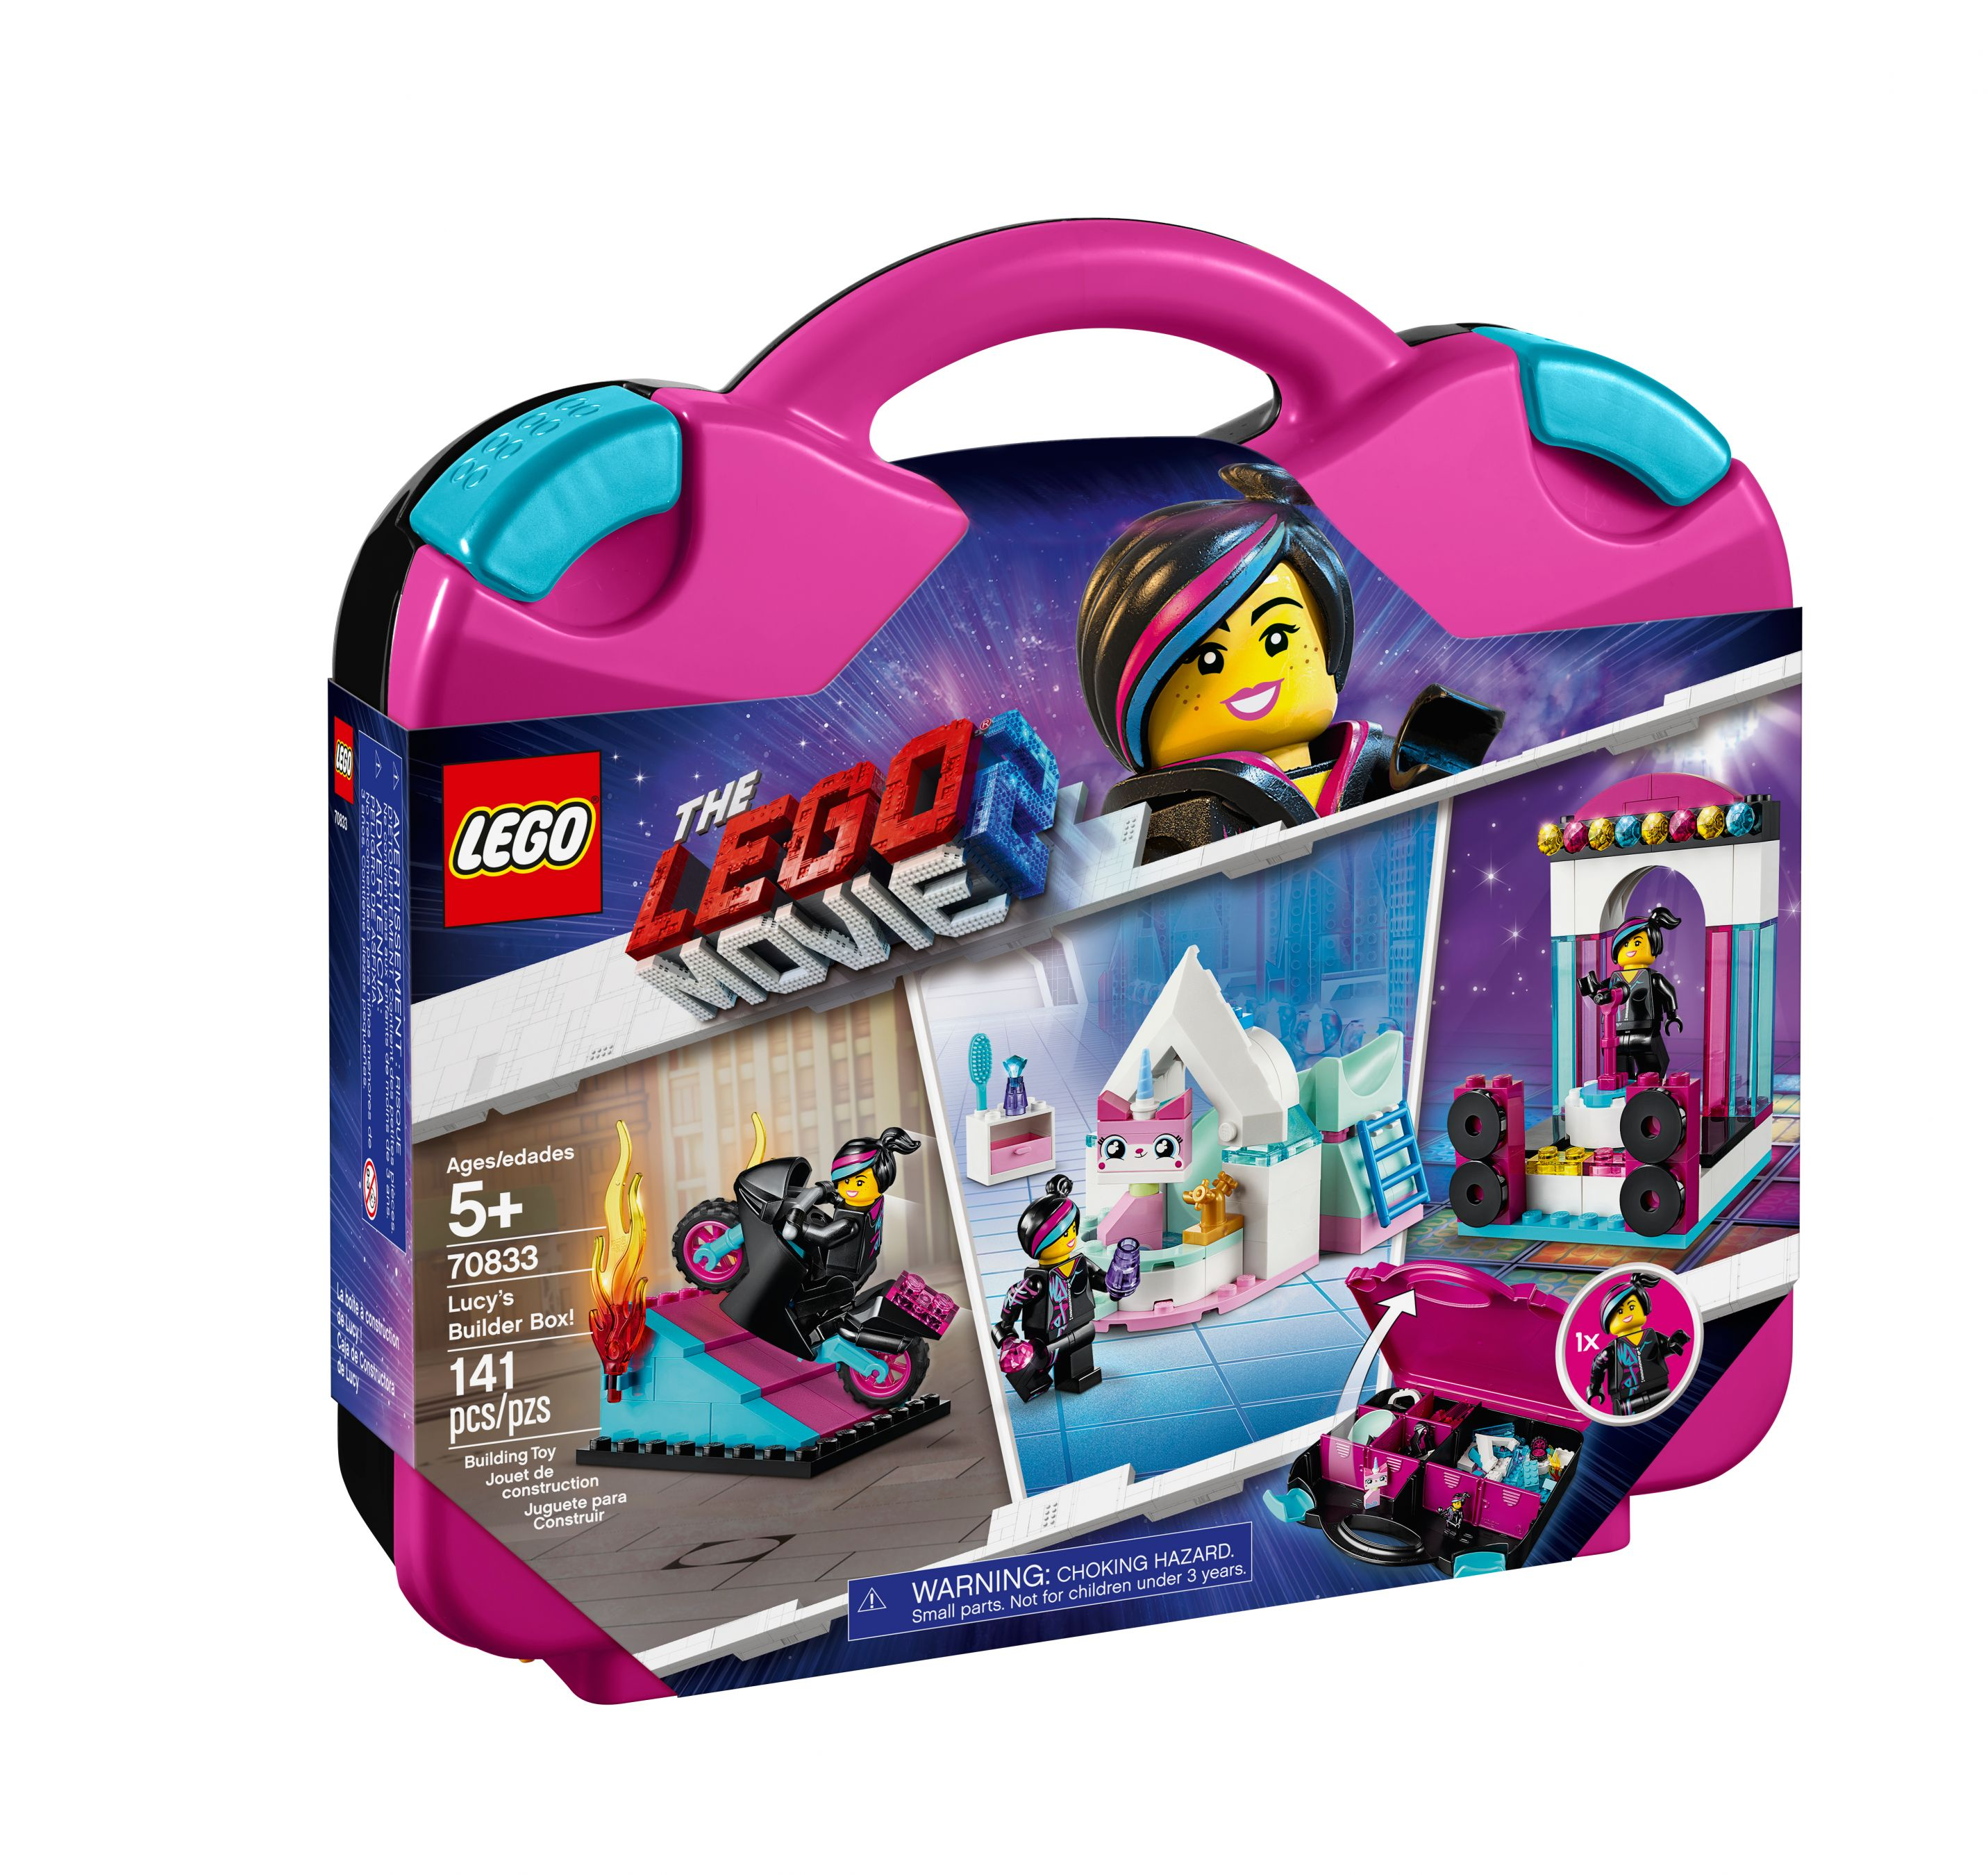 LEGO The LEGO Movie 2 70833 Lucys Baukoffer! LEGO_70833_alt1.jpg